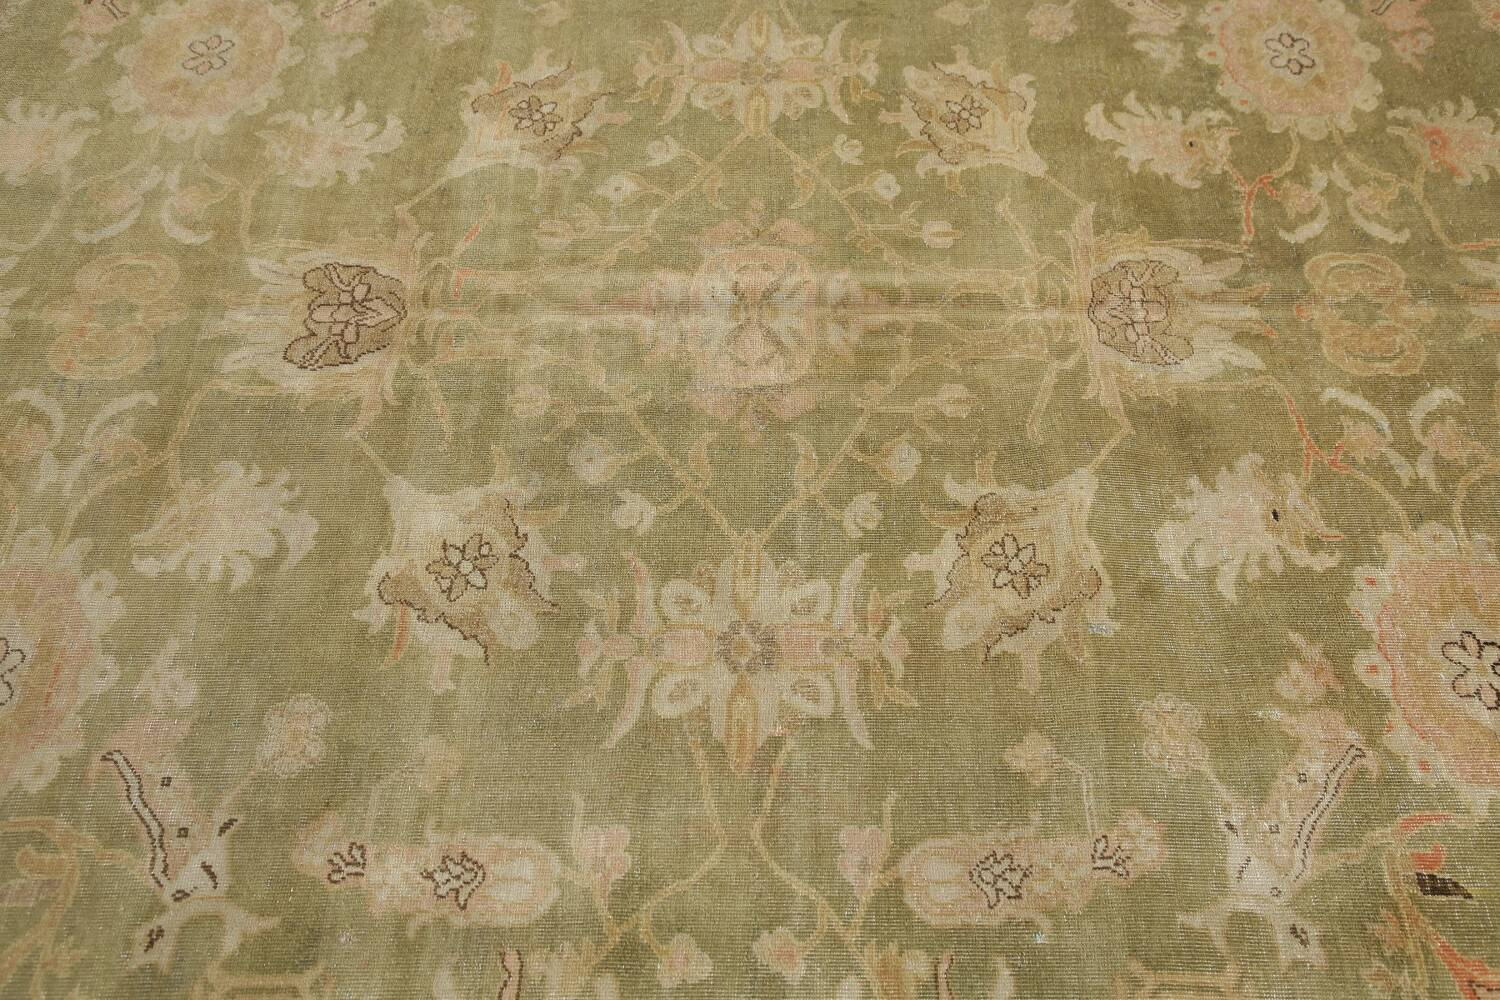 Antique Floral Oushak Green & Rust Oriental Area Rug 8x10 image 21